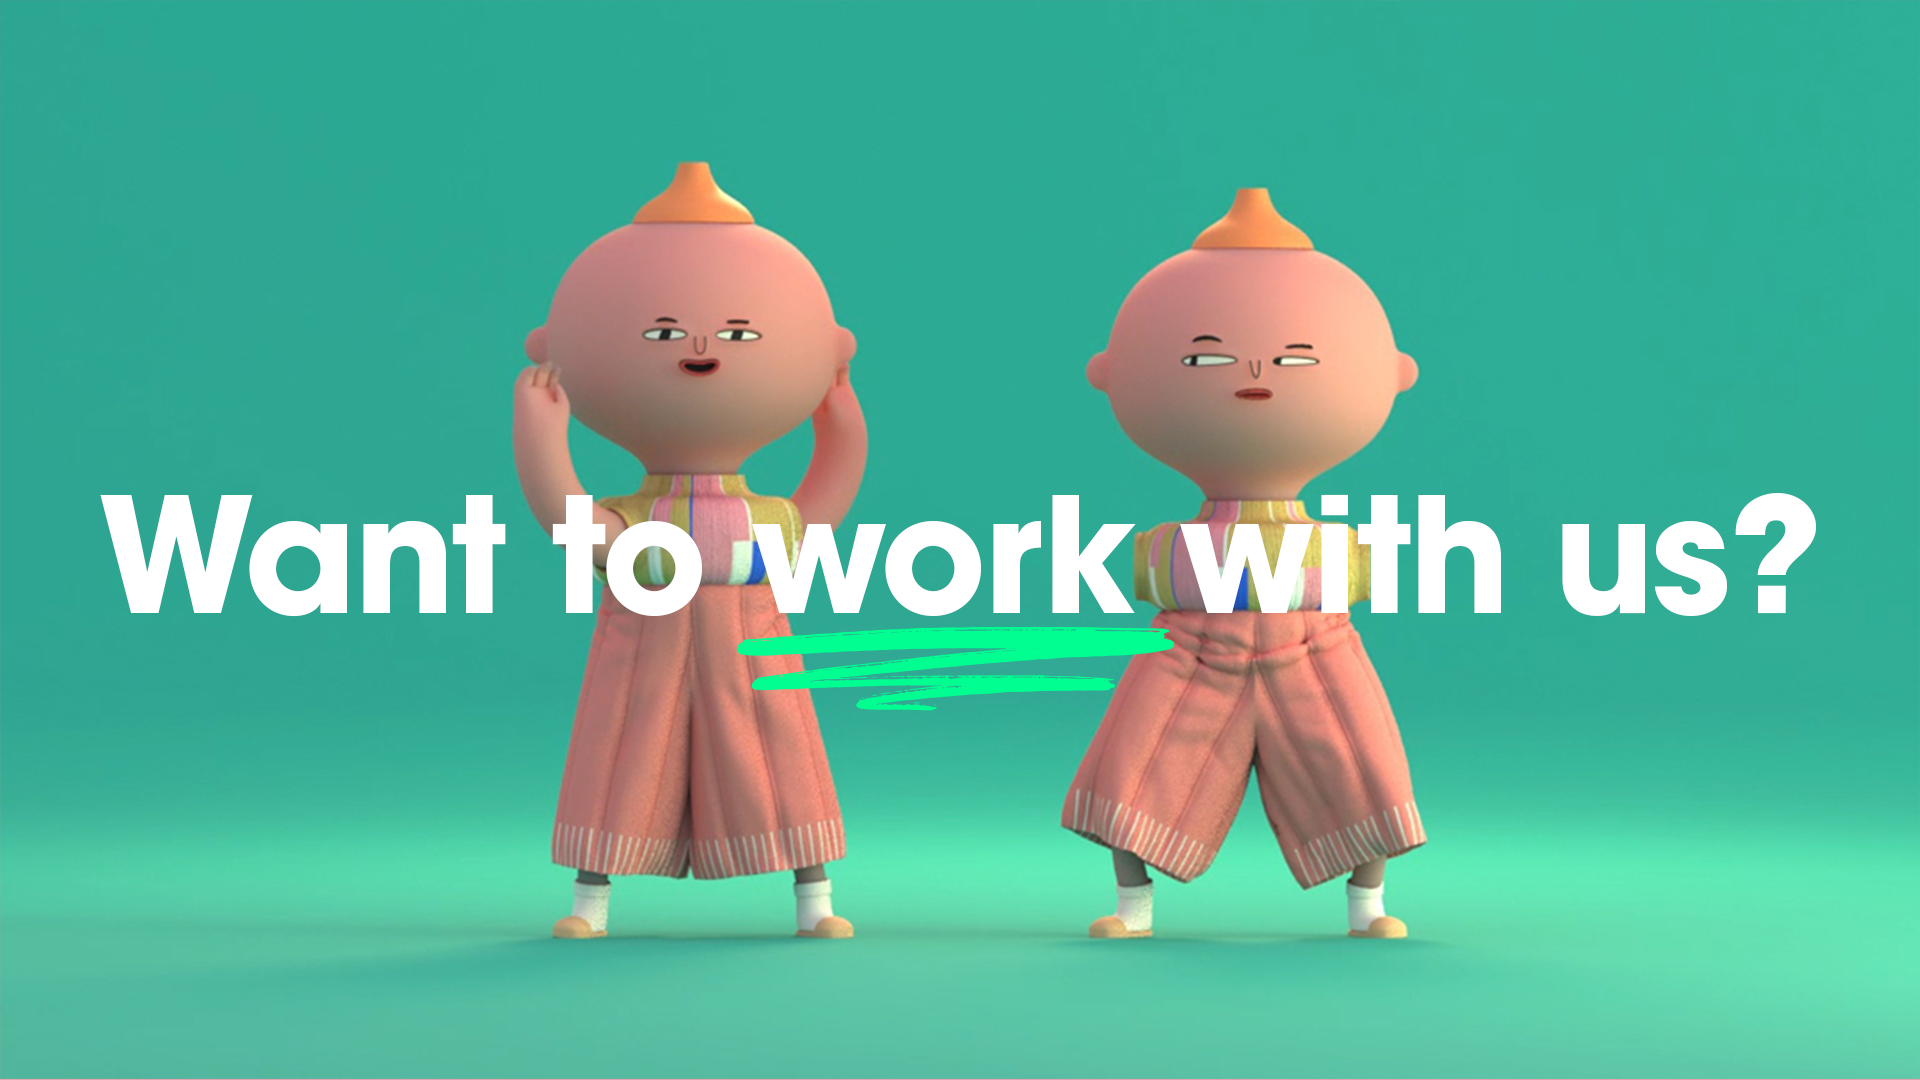 Want to work with us - Media Pack